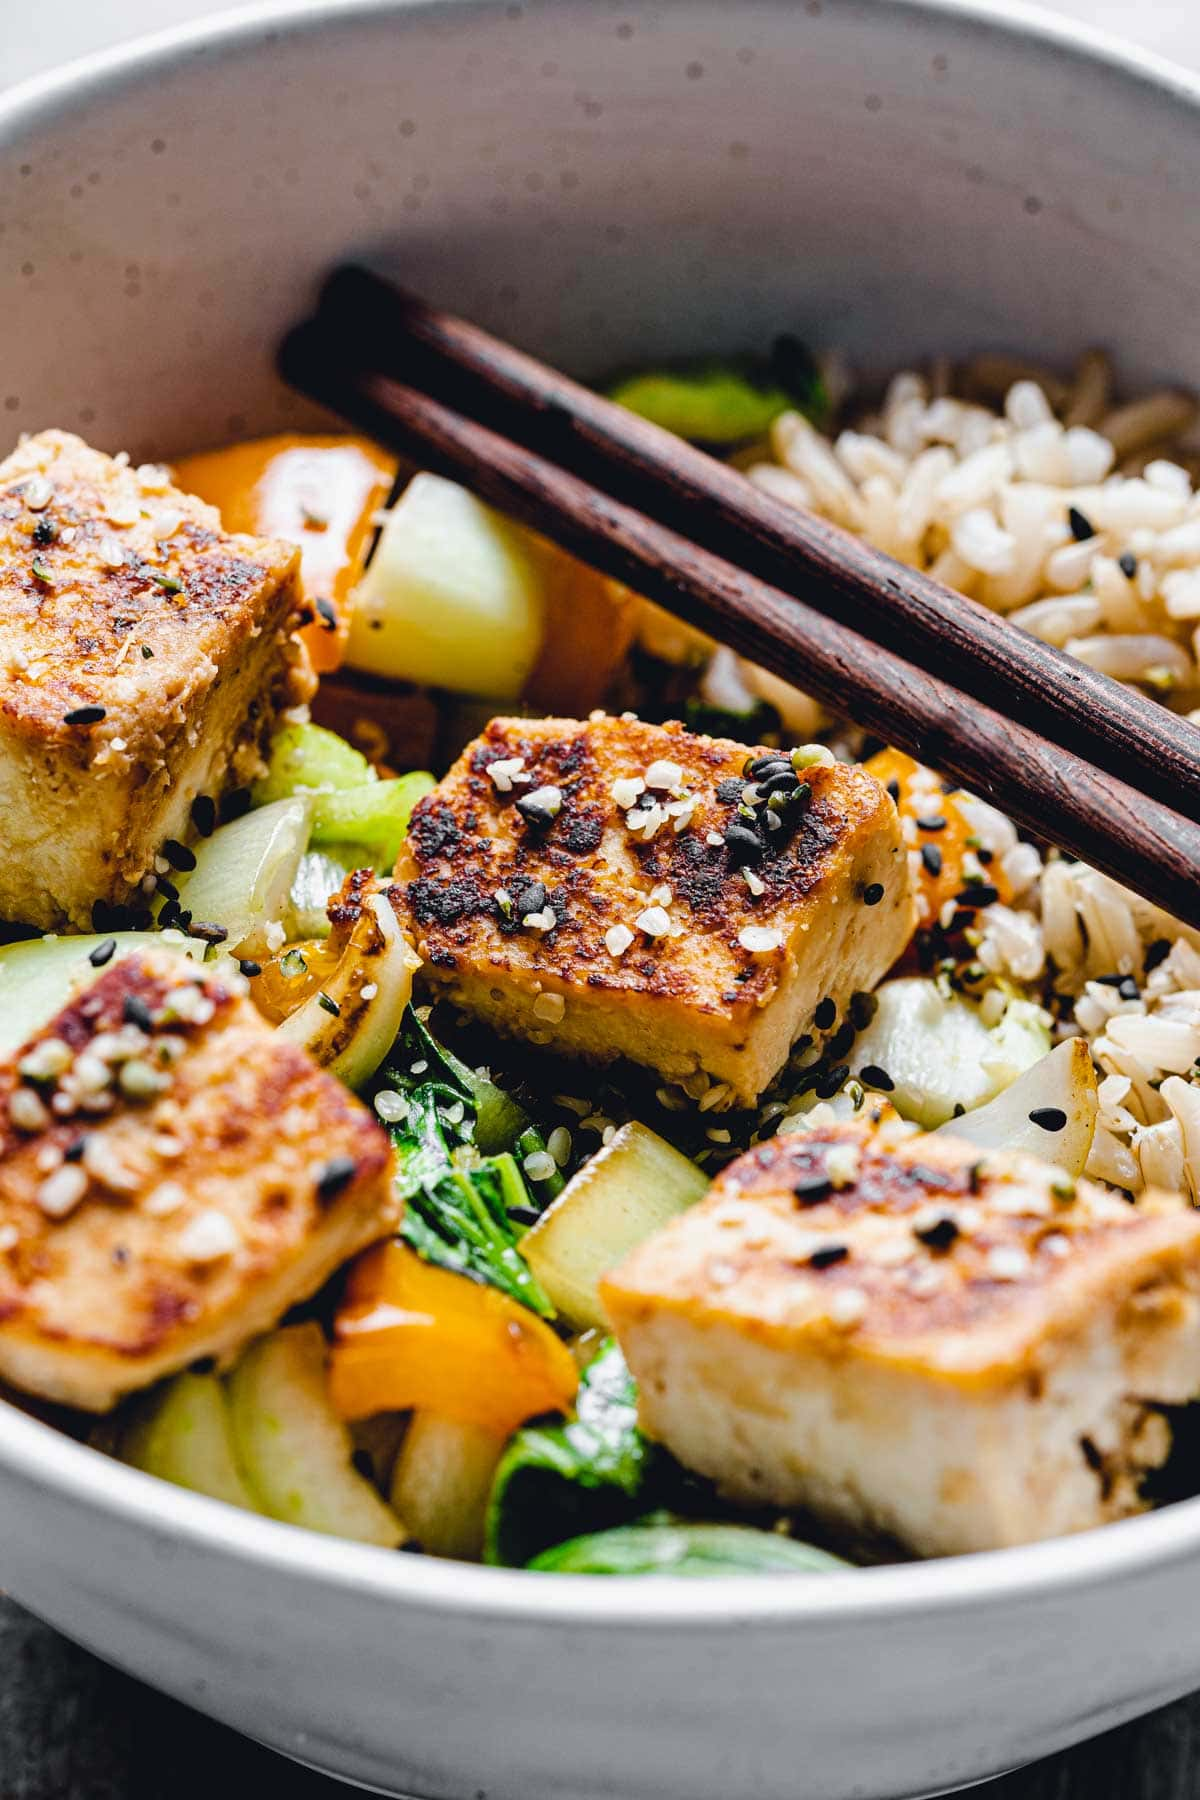 A close-up view of a bowl of stir-fry veggies with focus on a single cube of marinated tofu.